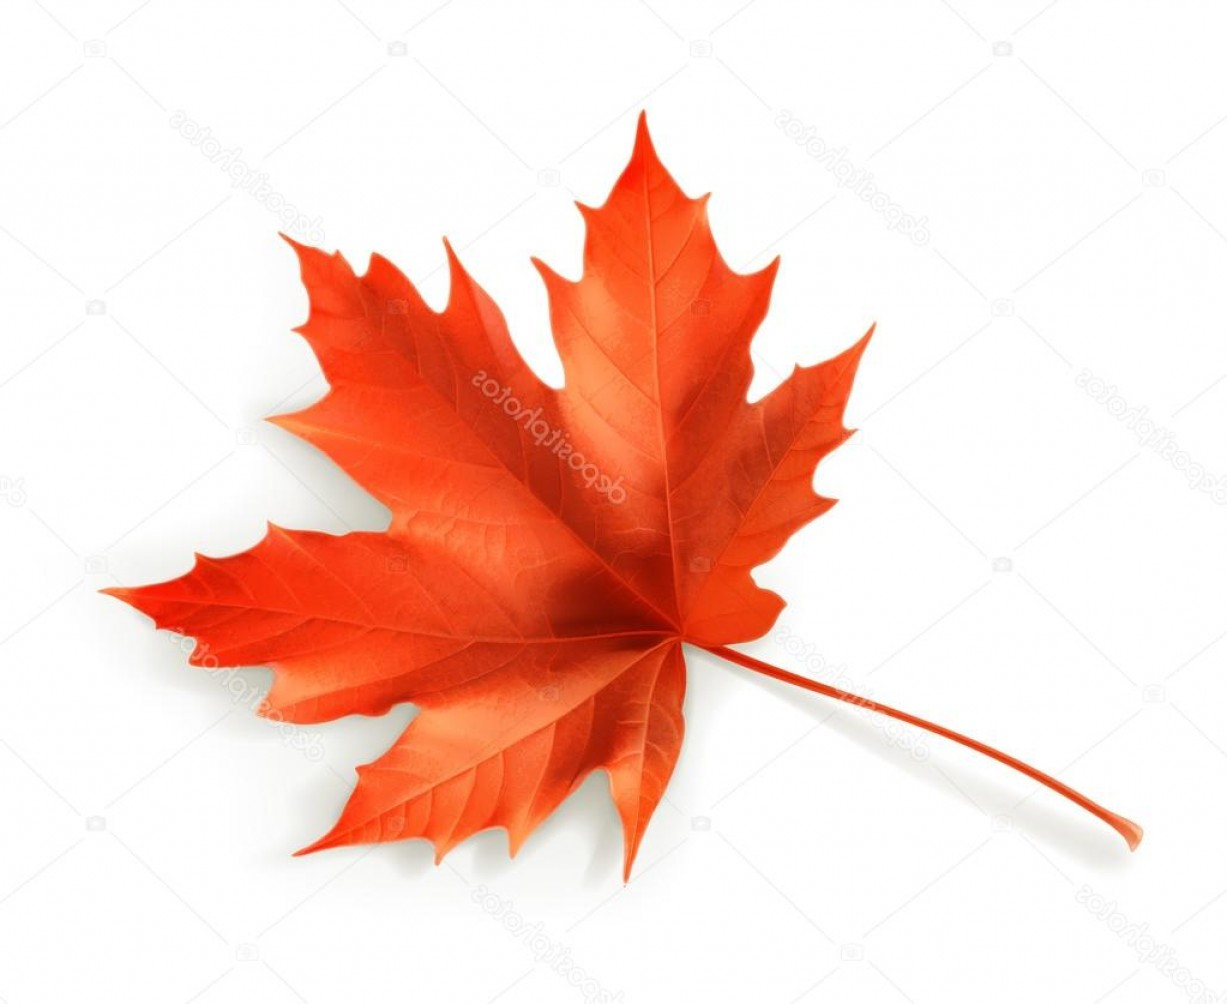 Red Maple Leaf Vector: Stock Illustration Red Maple Leaf Vector Object